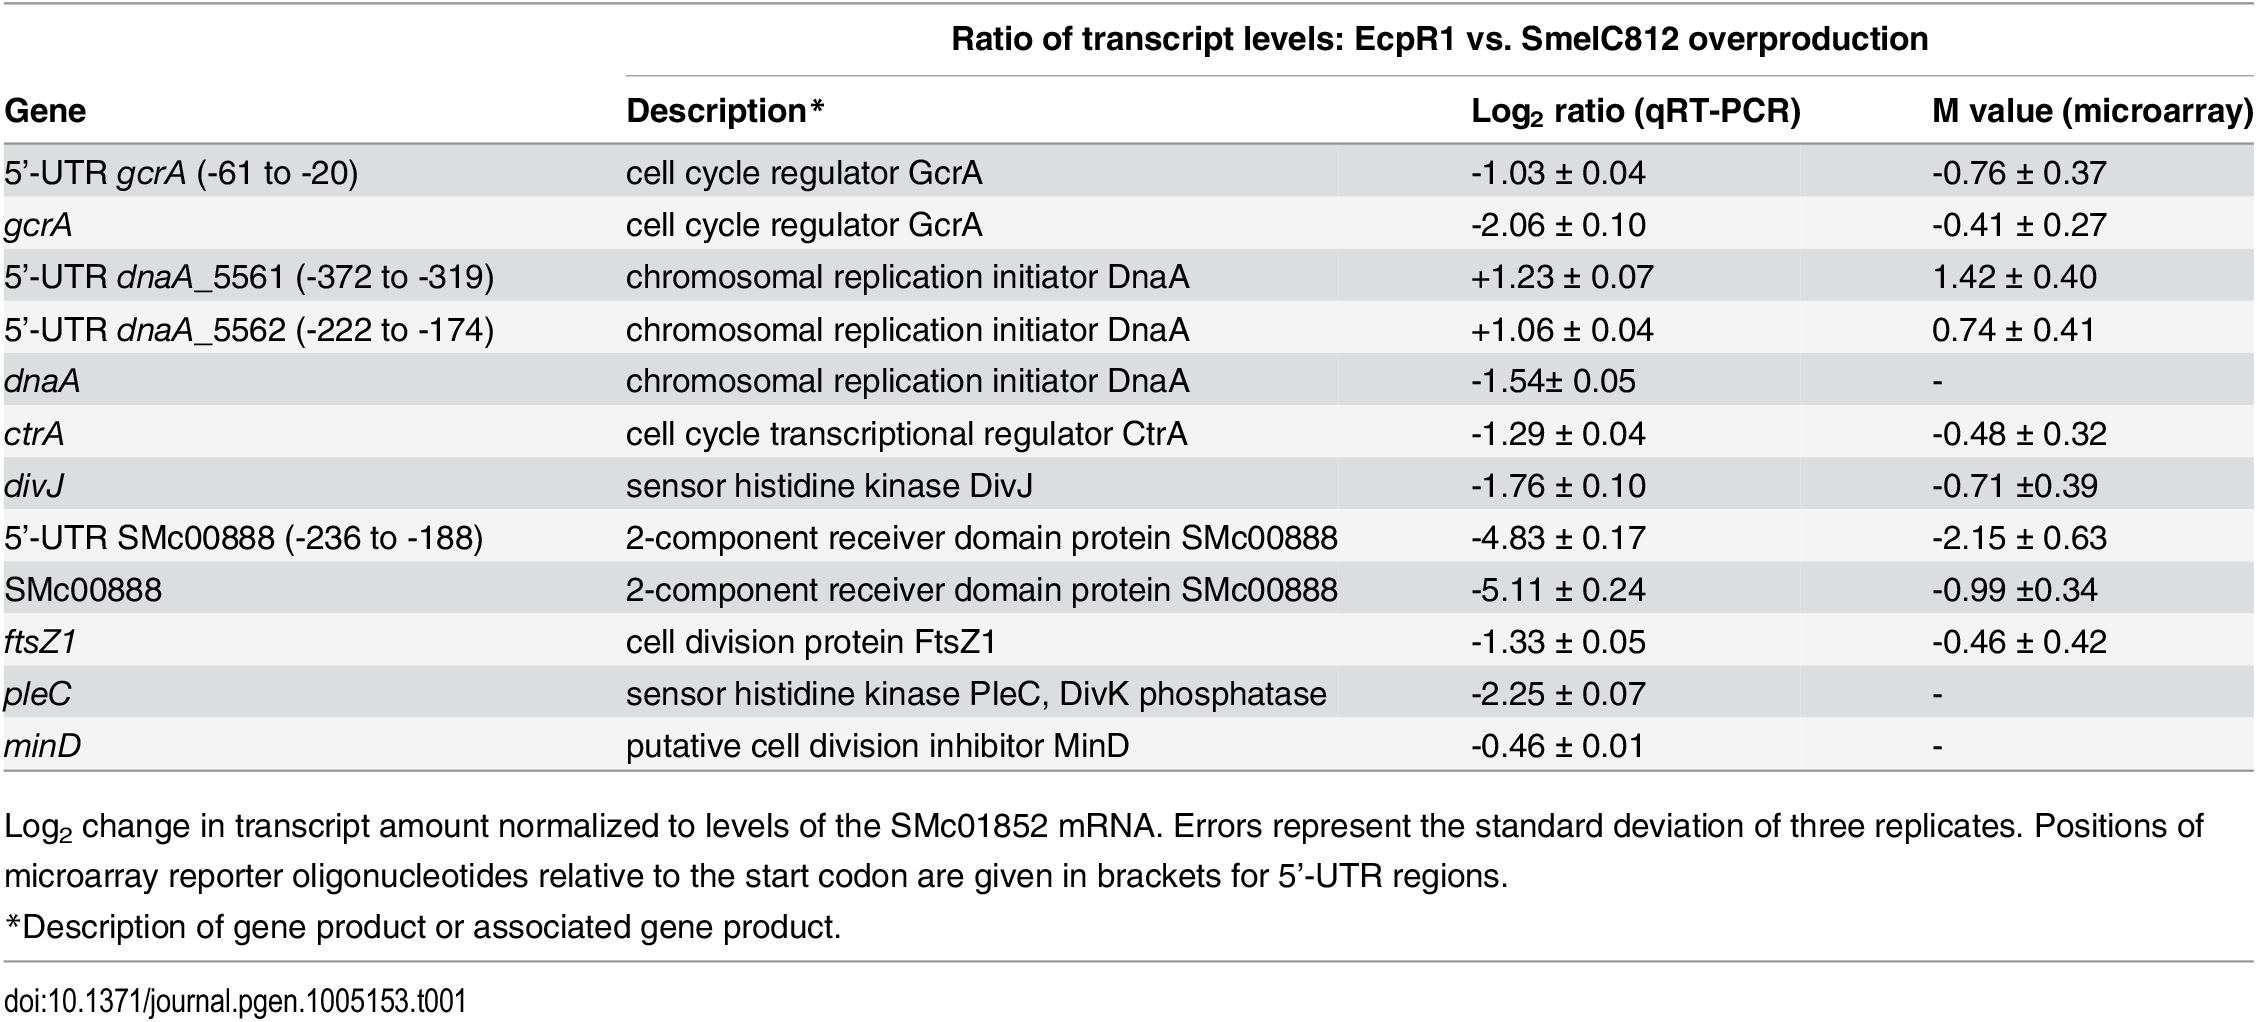 qRT-PCR based verification of putative EcpR1 target genes displaying changes in transcript levels upon overproduction of EcpR1 as detected by global transcriptome profiling.